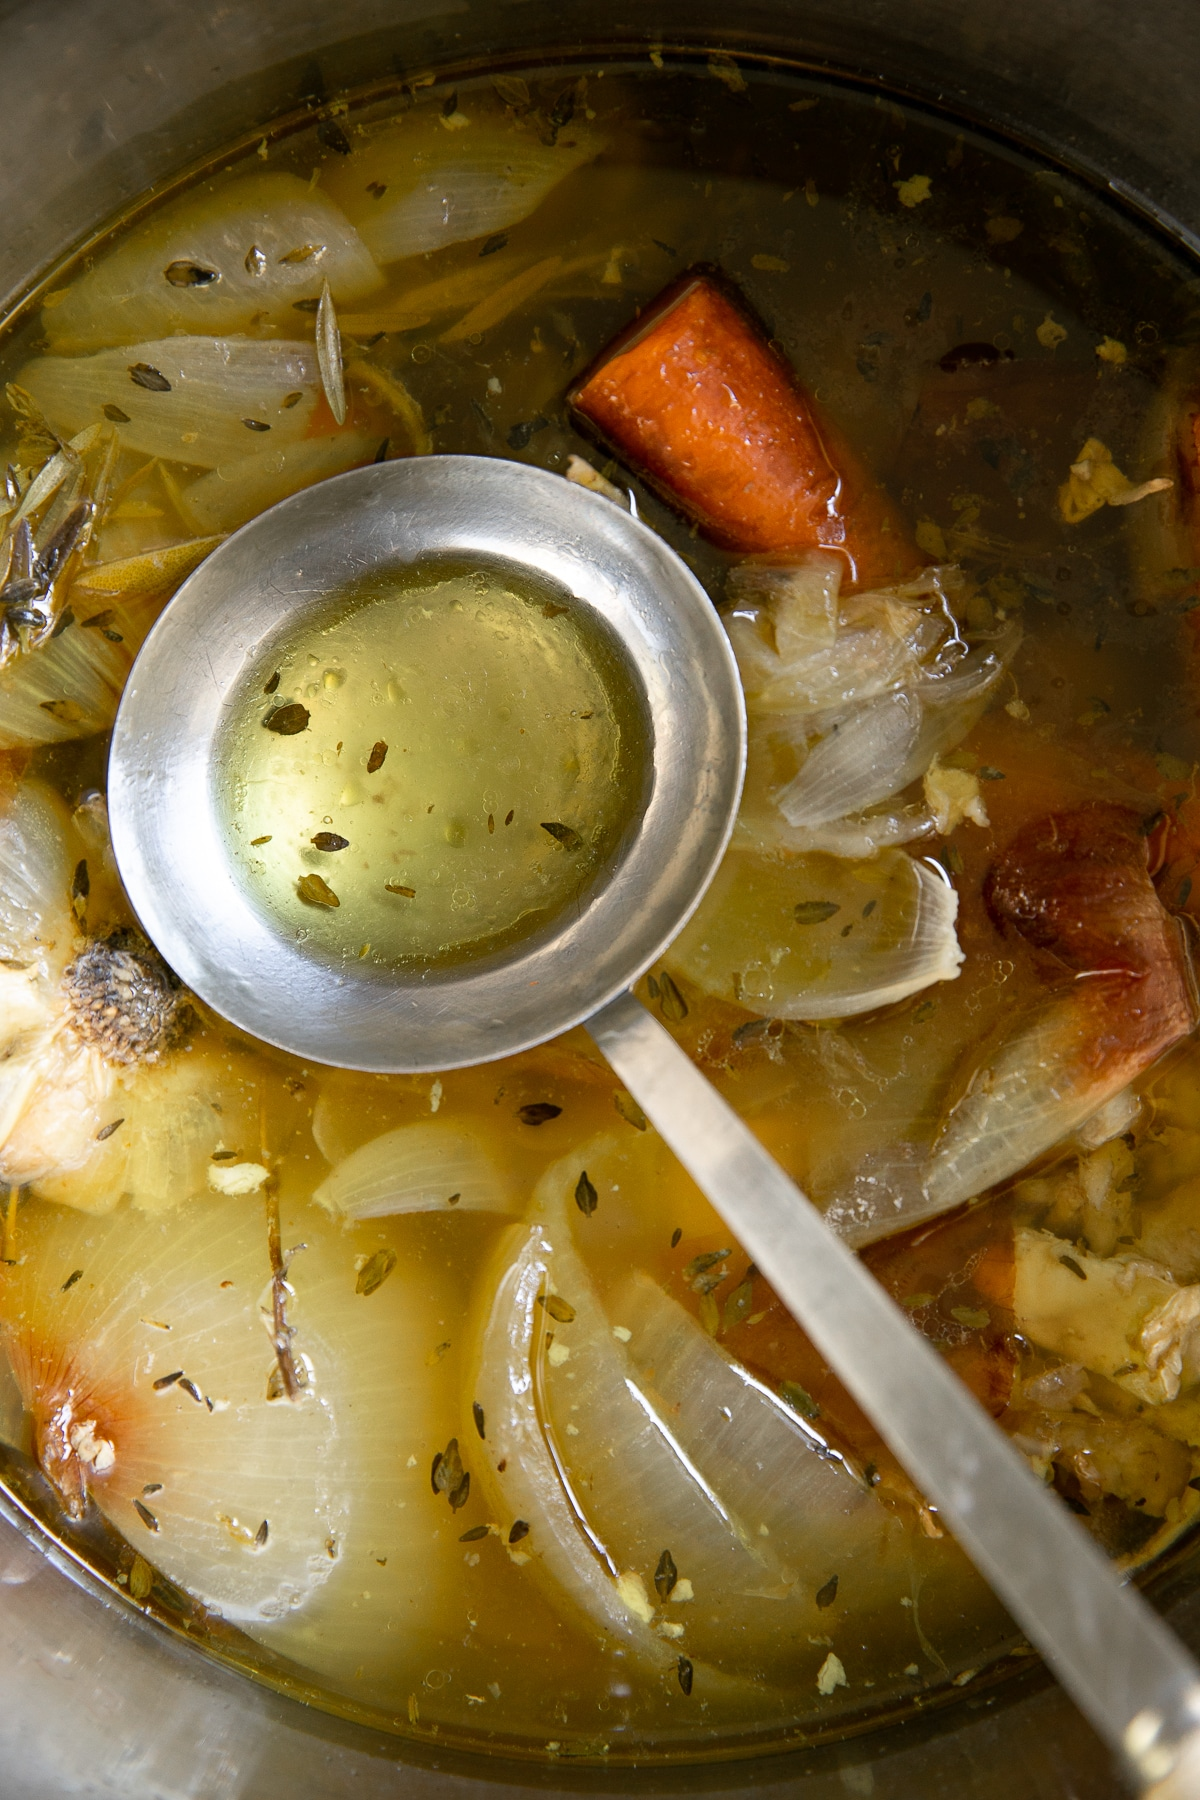 Ladle in a large pot filled with boiled chicken stock and roasting vegetables.